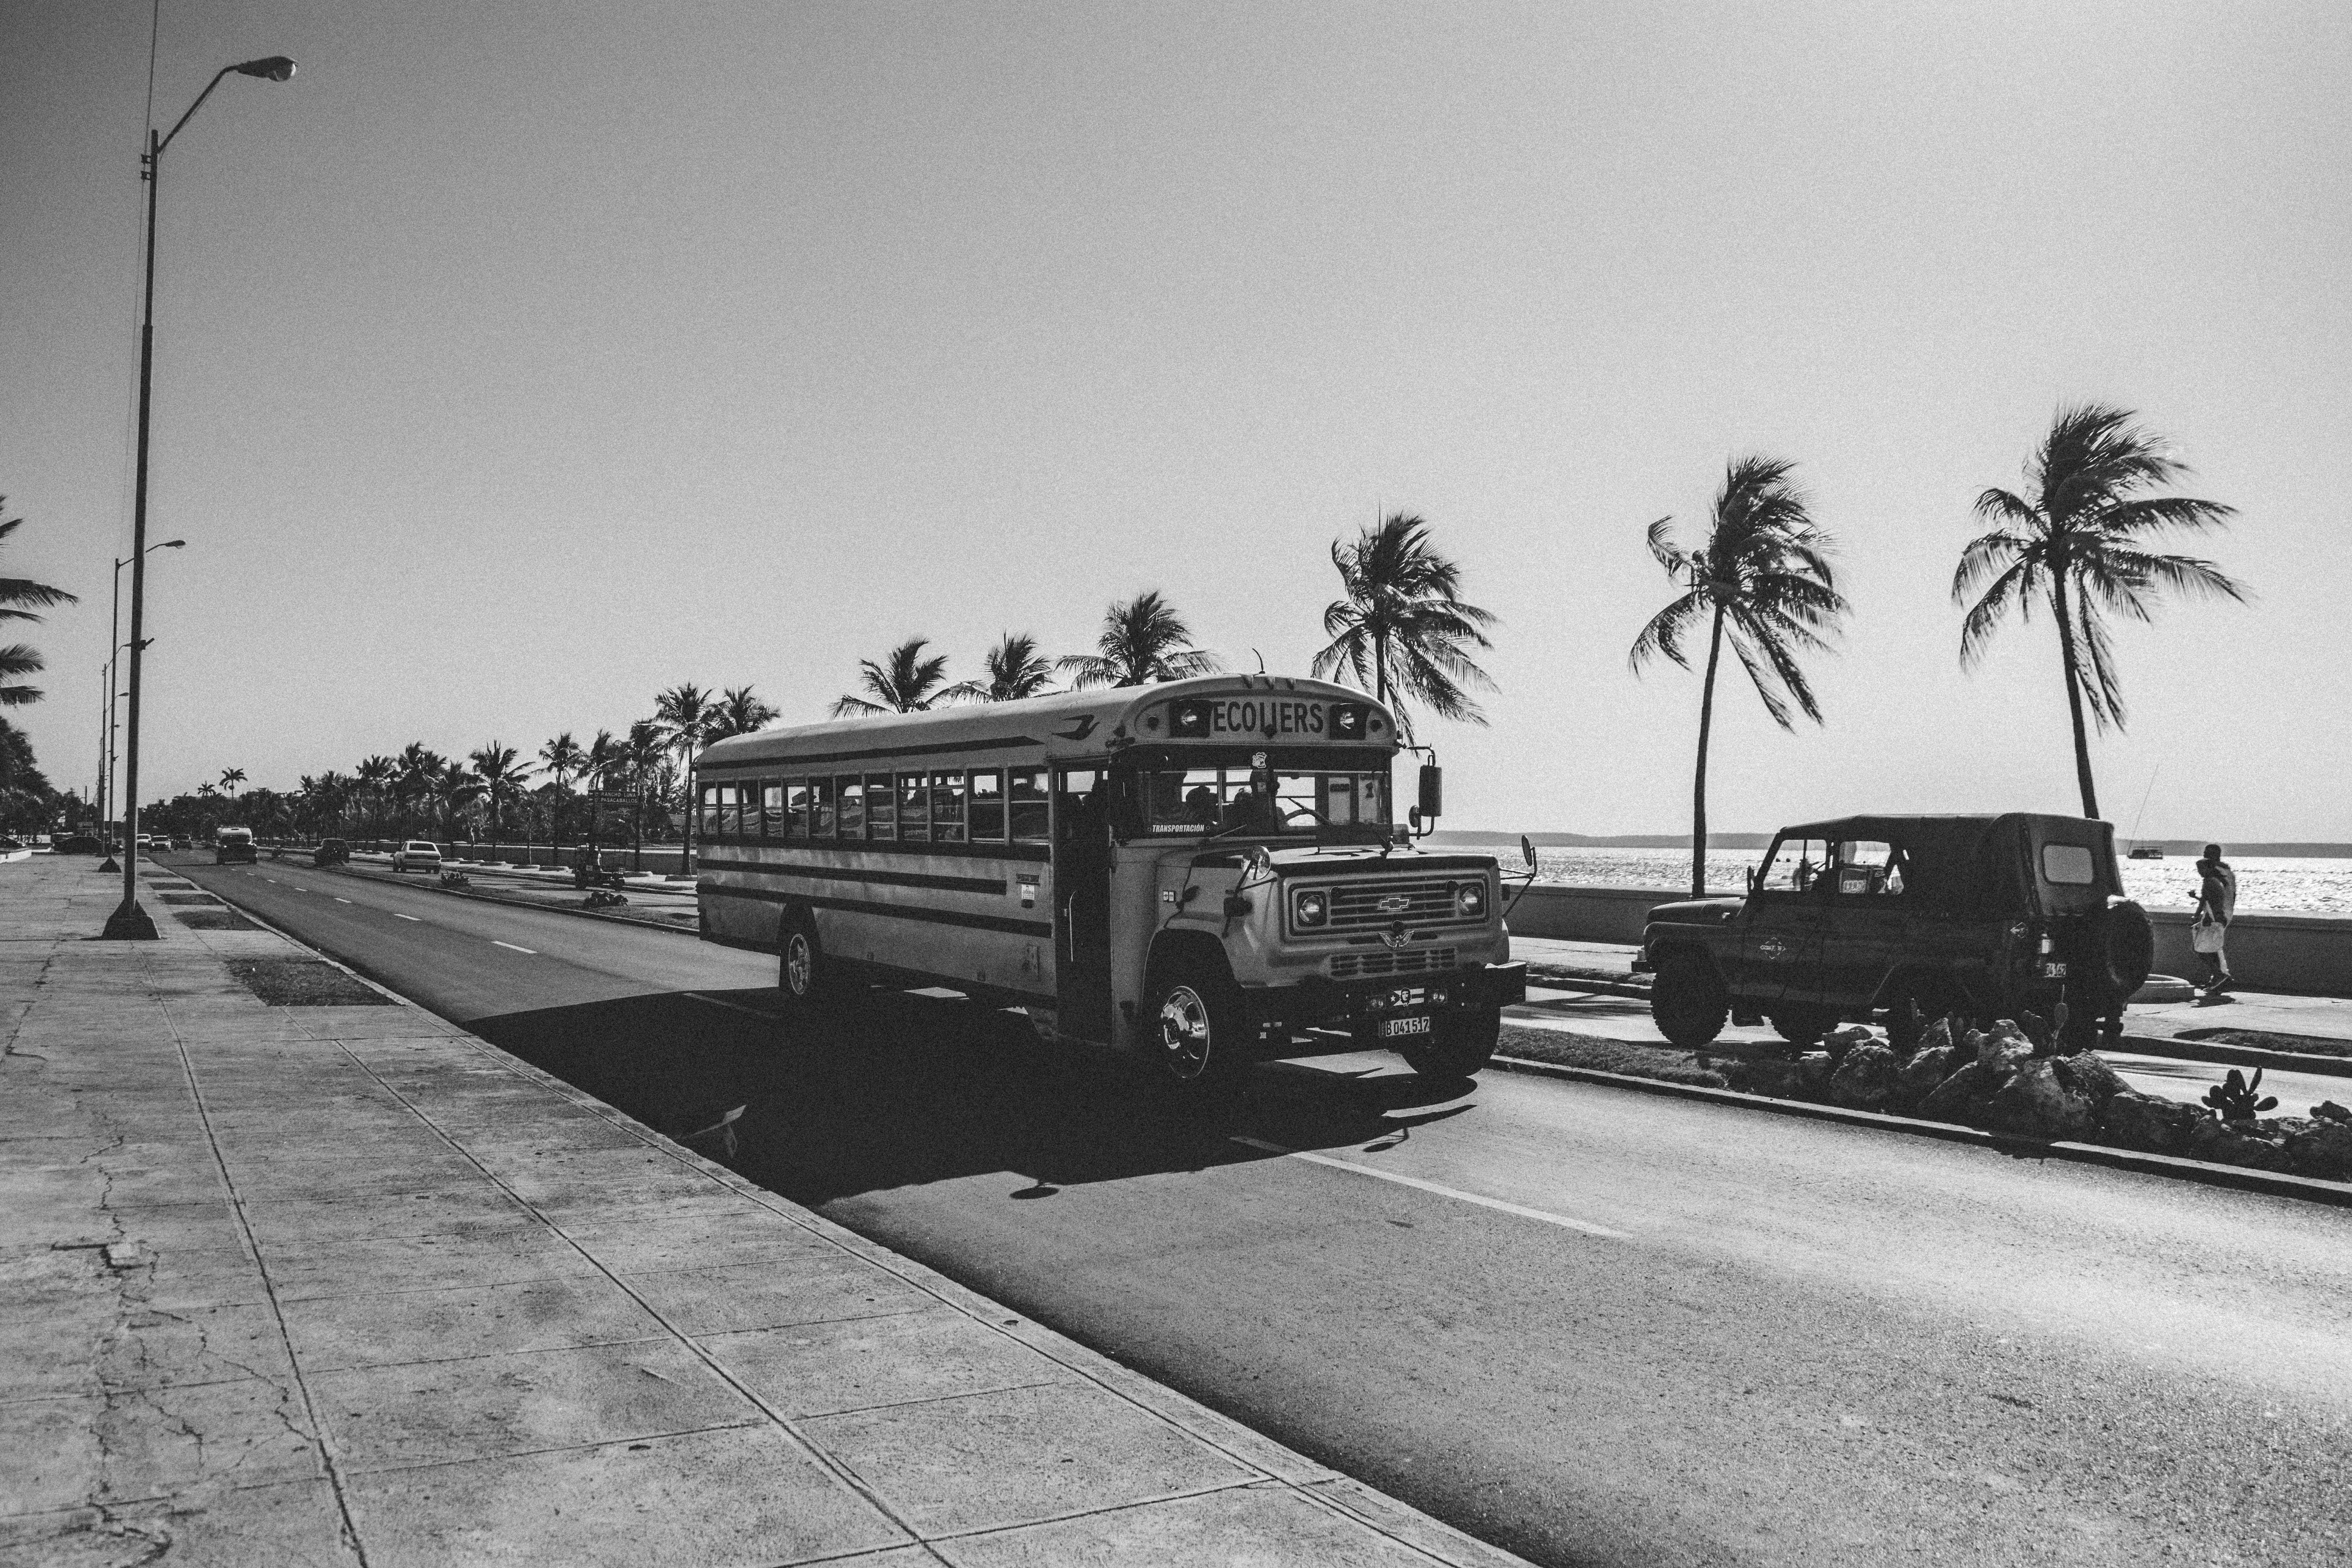 school bus on concrete road during daytime